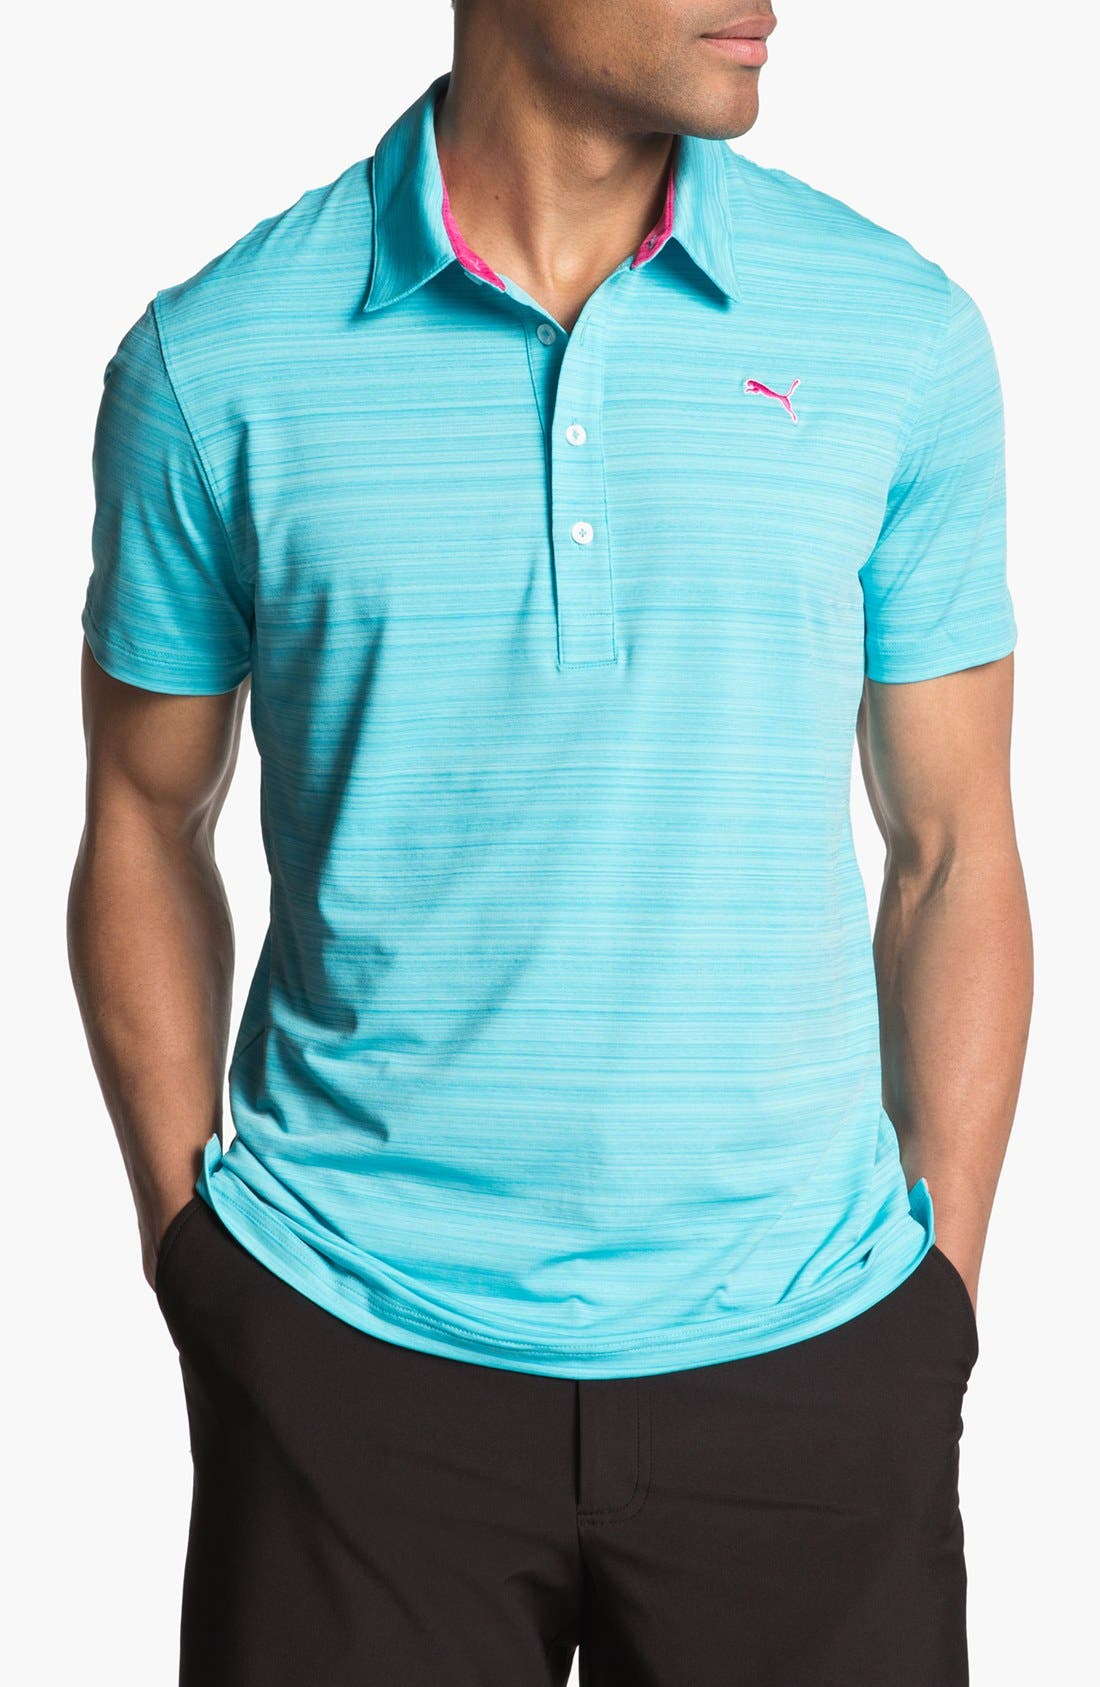 Main Image - PUMA GOLF 'Barcode Stripe' dryCELL™ Polo